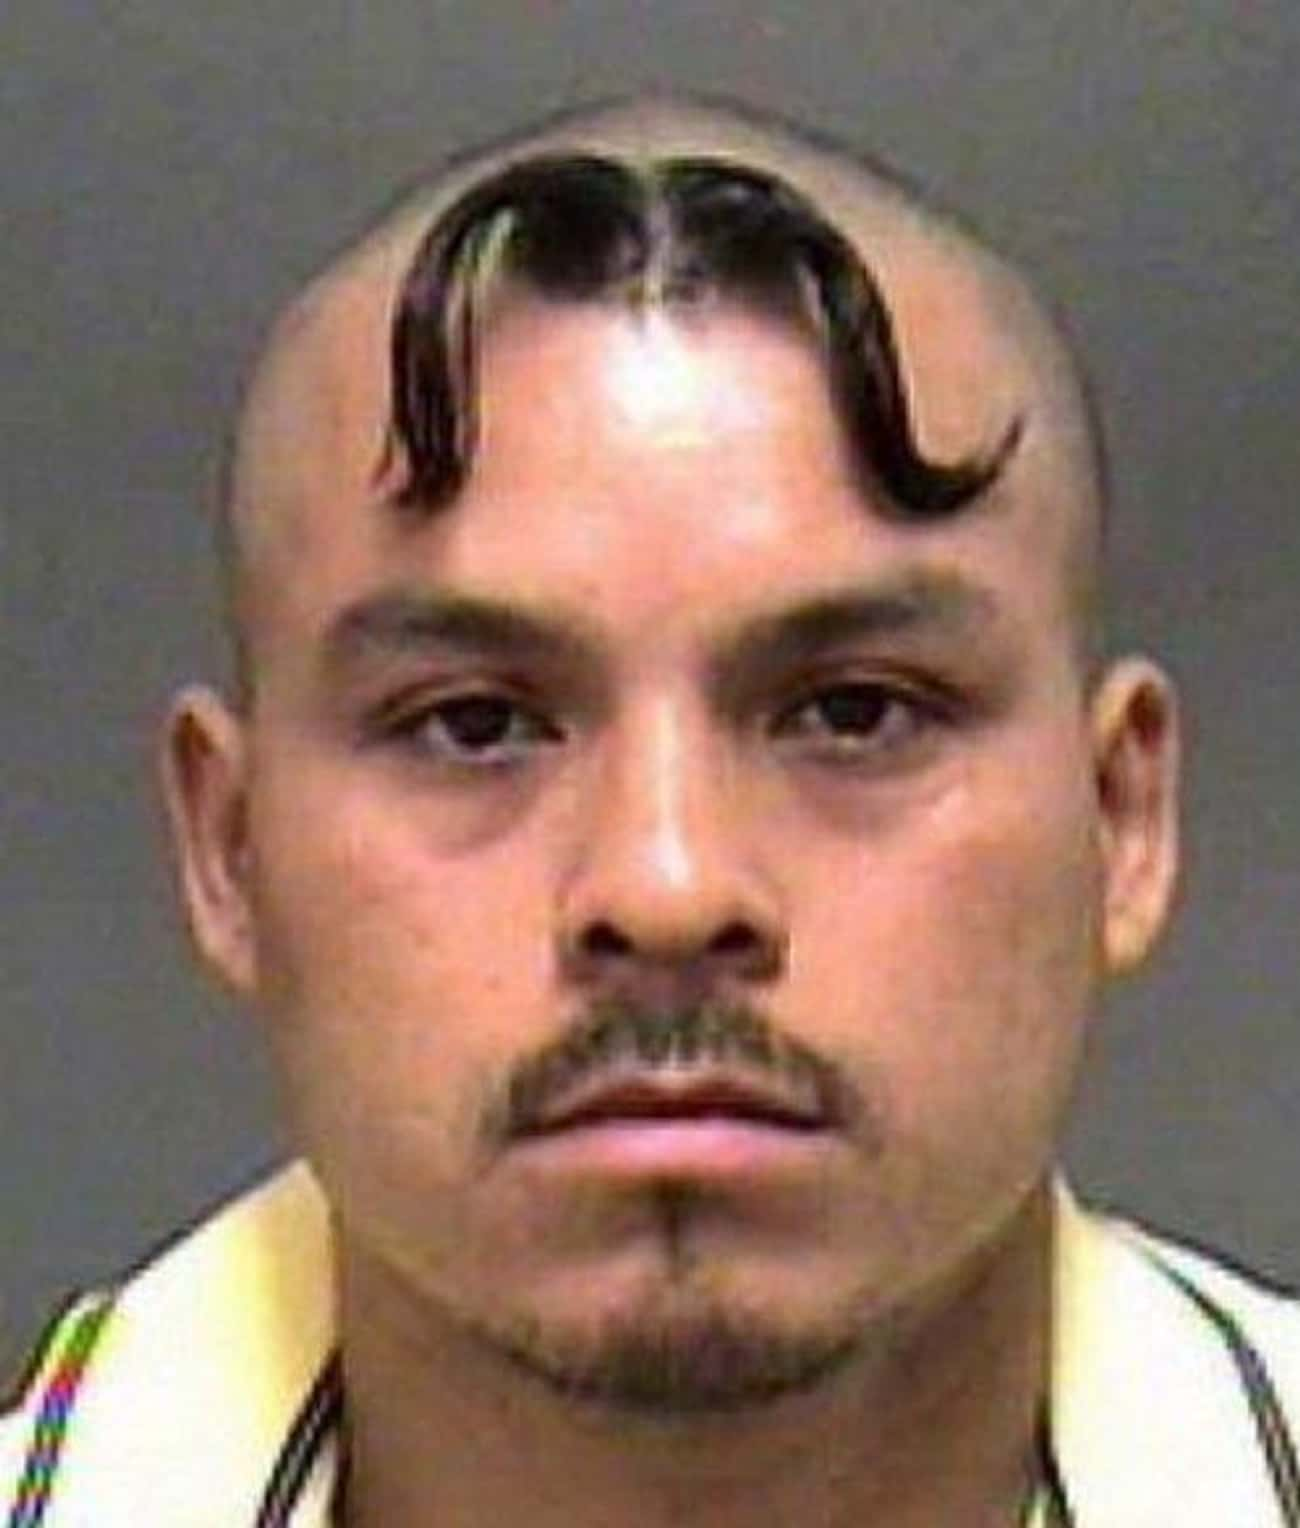 Taking Your Stache To New Heig is listed (or ranked) 4 on the list 27 Of The Most Embarrassing Mugshot Hairdos Ever